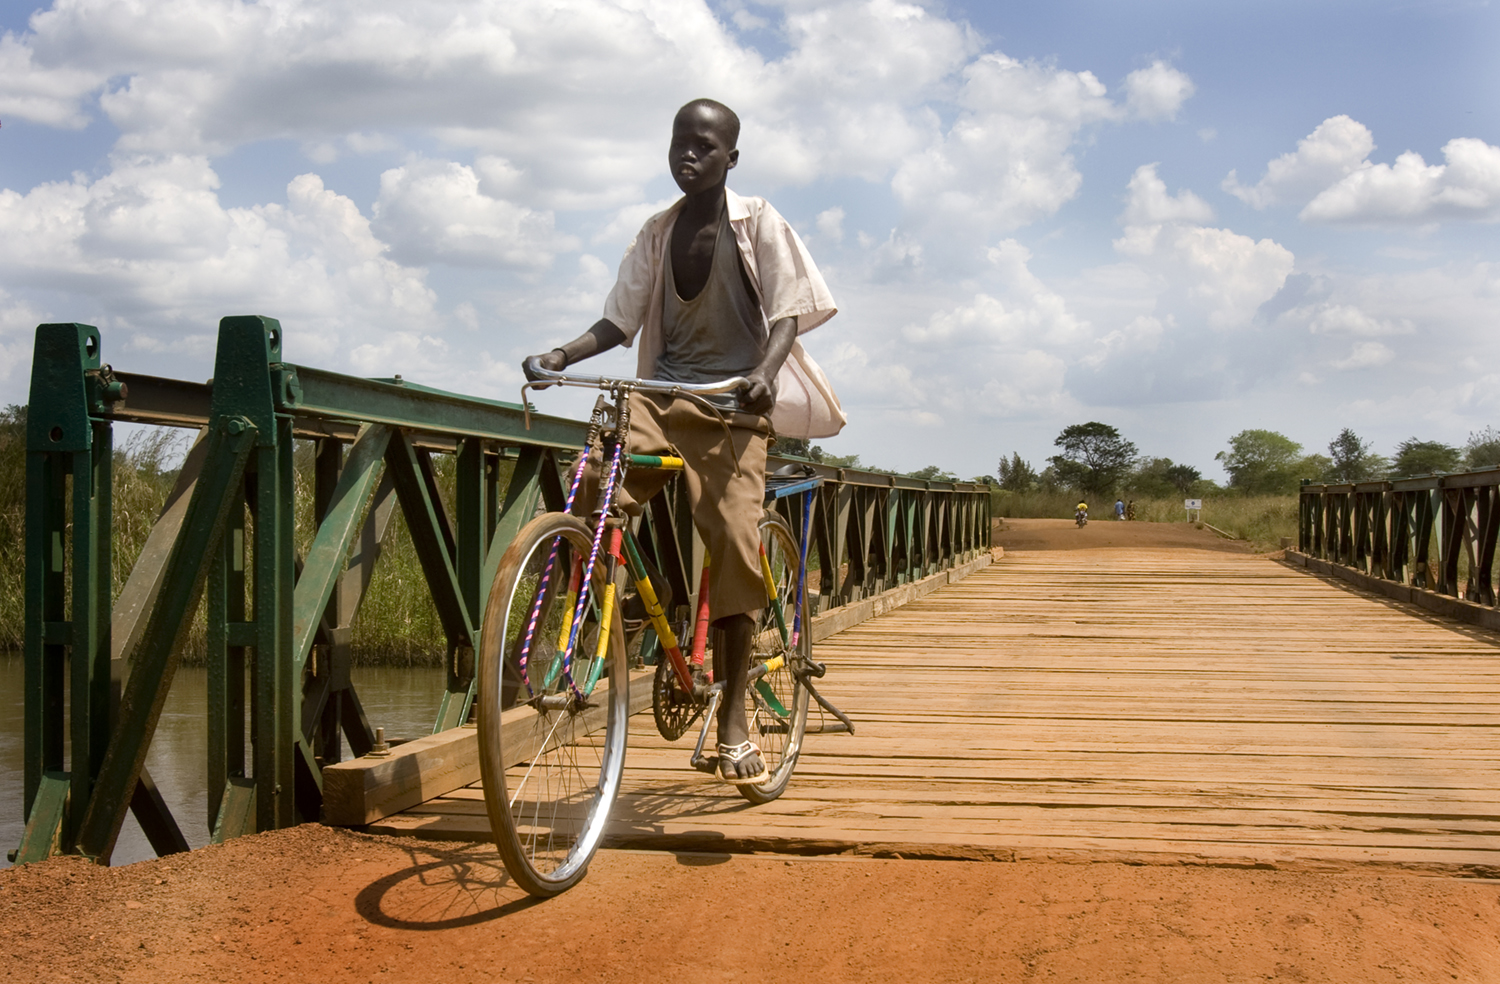 Reconstruction of bombed bridges in South-Sudan. (c) Bart Coolen